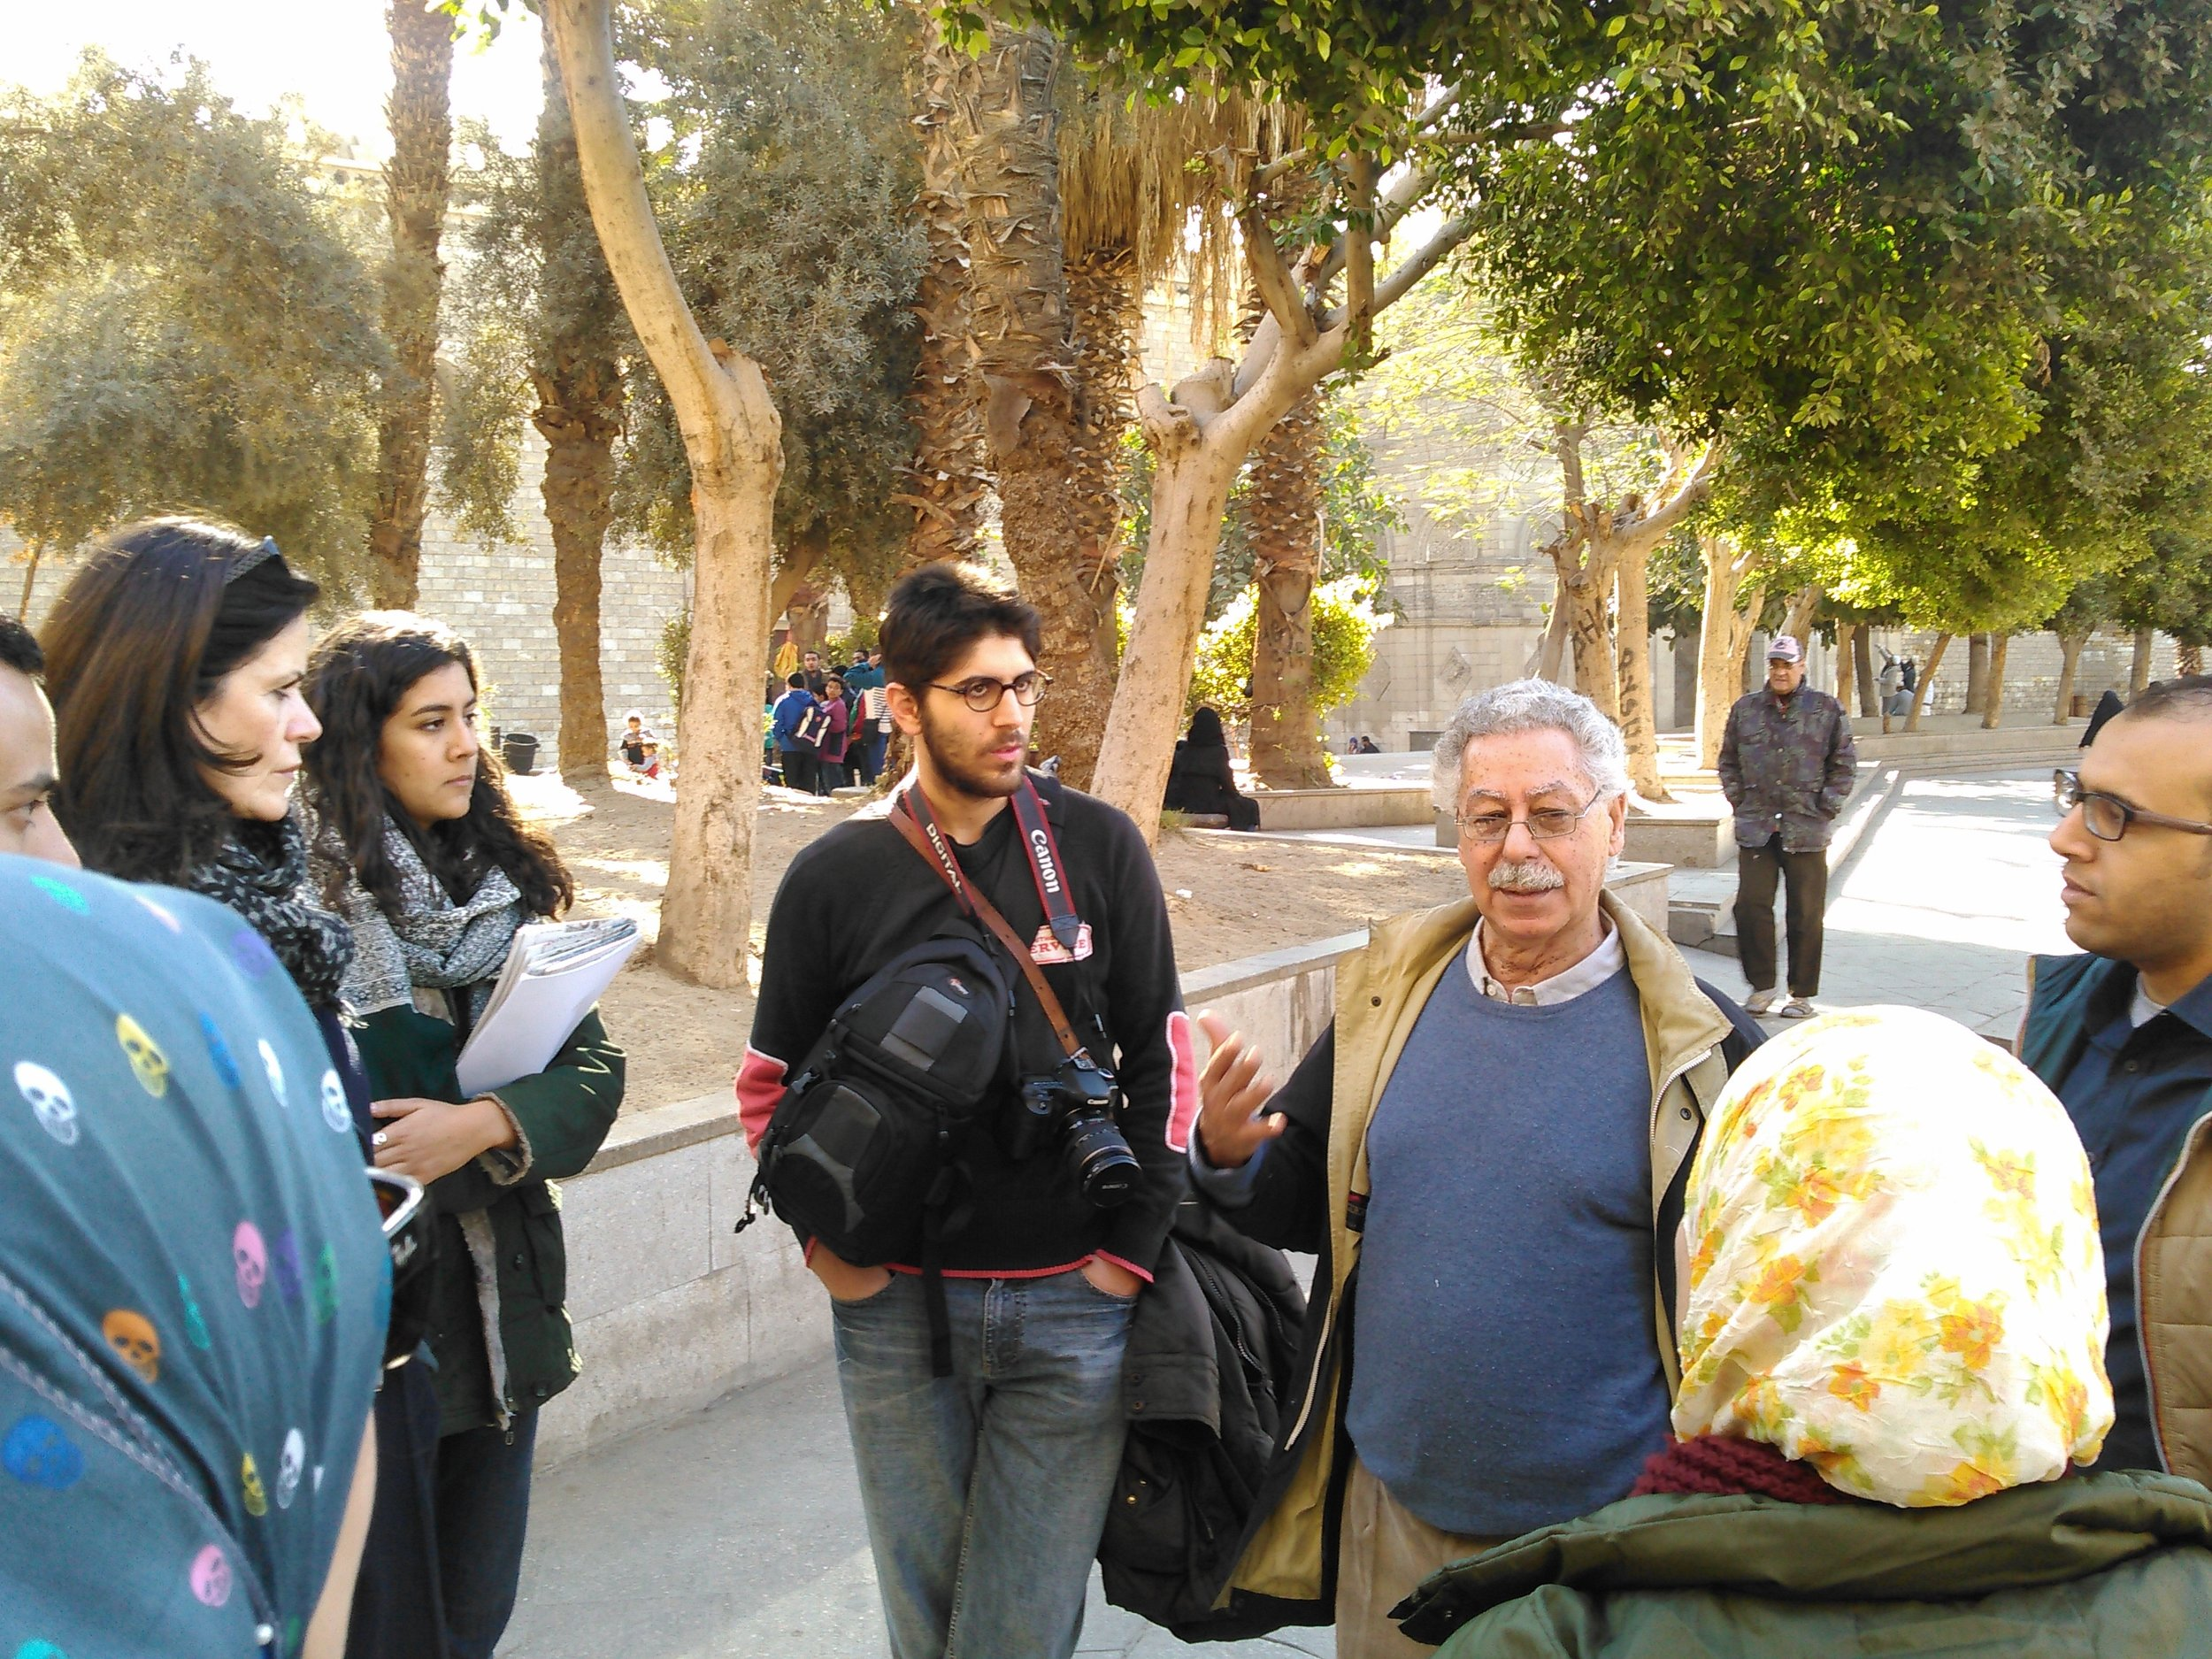 Dr. Fekri Hassan (in blue sweater) and other members of our tour group.